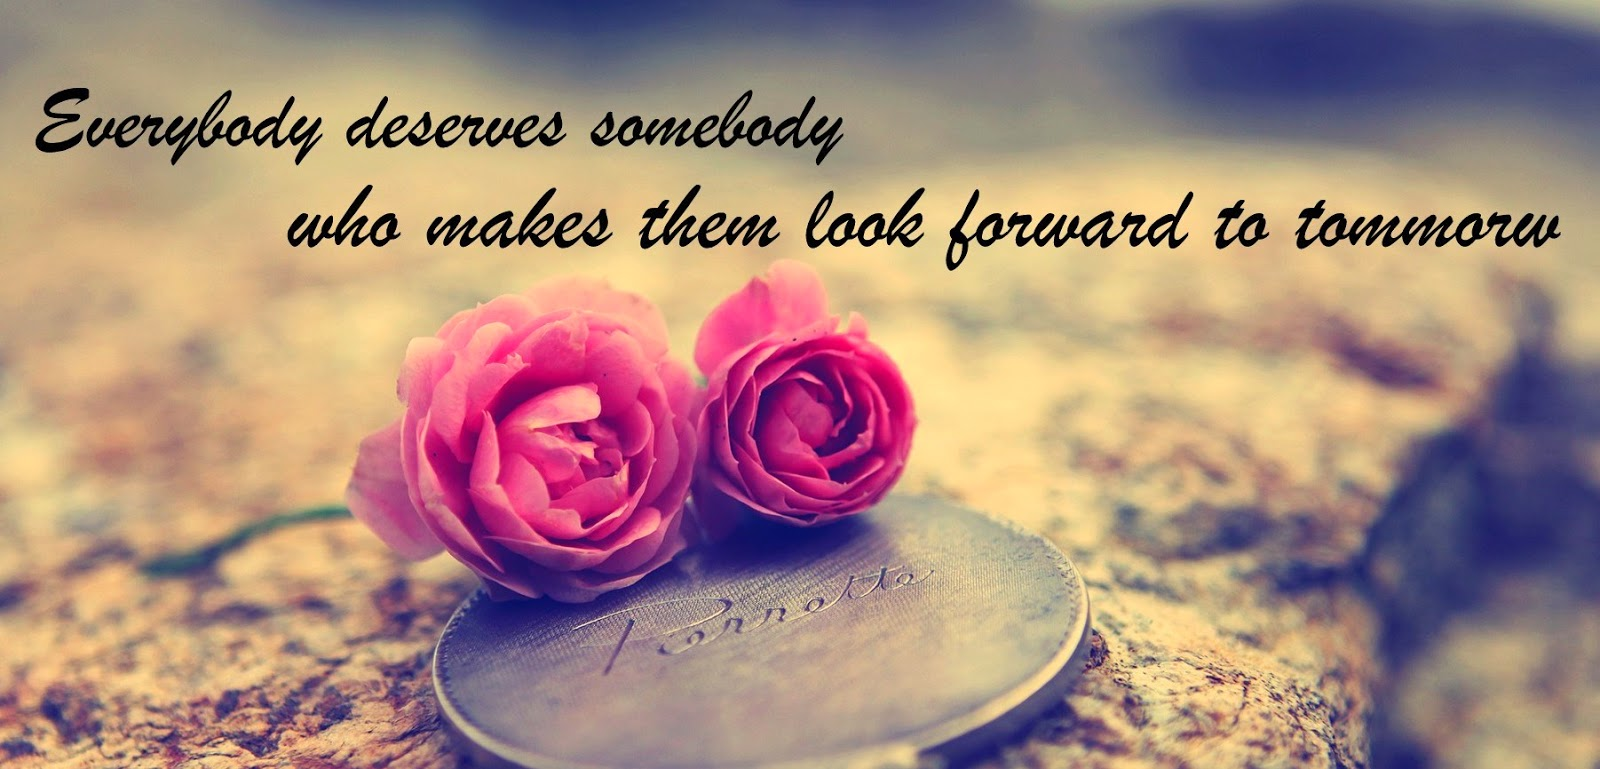 Love Quotes Hd Wallpapers For Him Beautiful Love Quotes For Her With Rose Flower Images